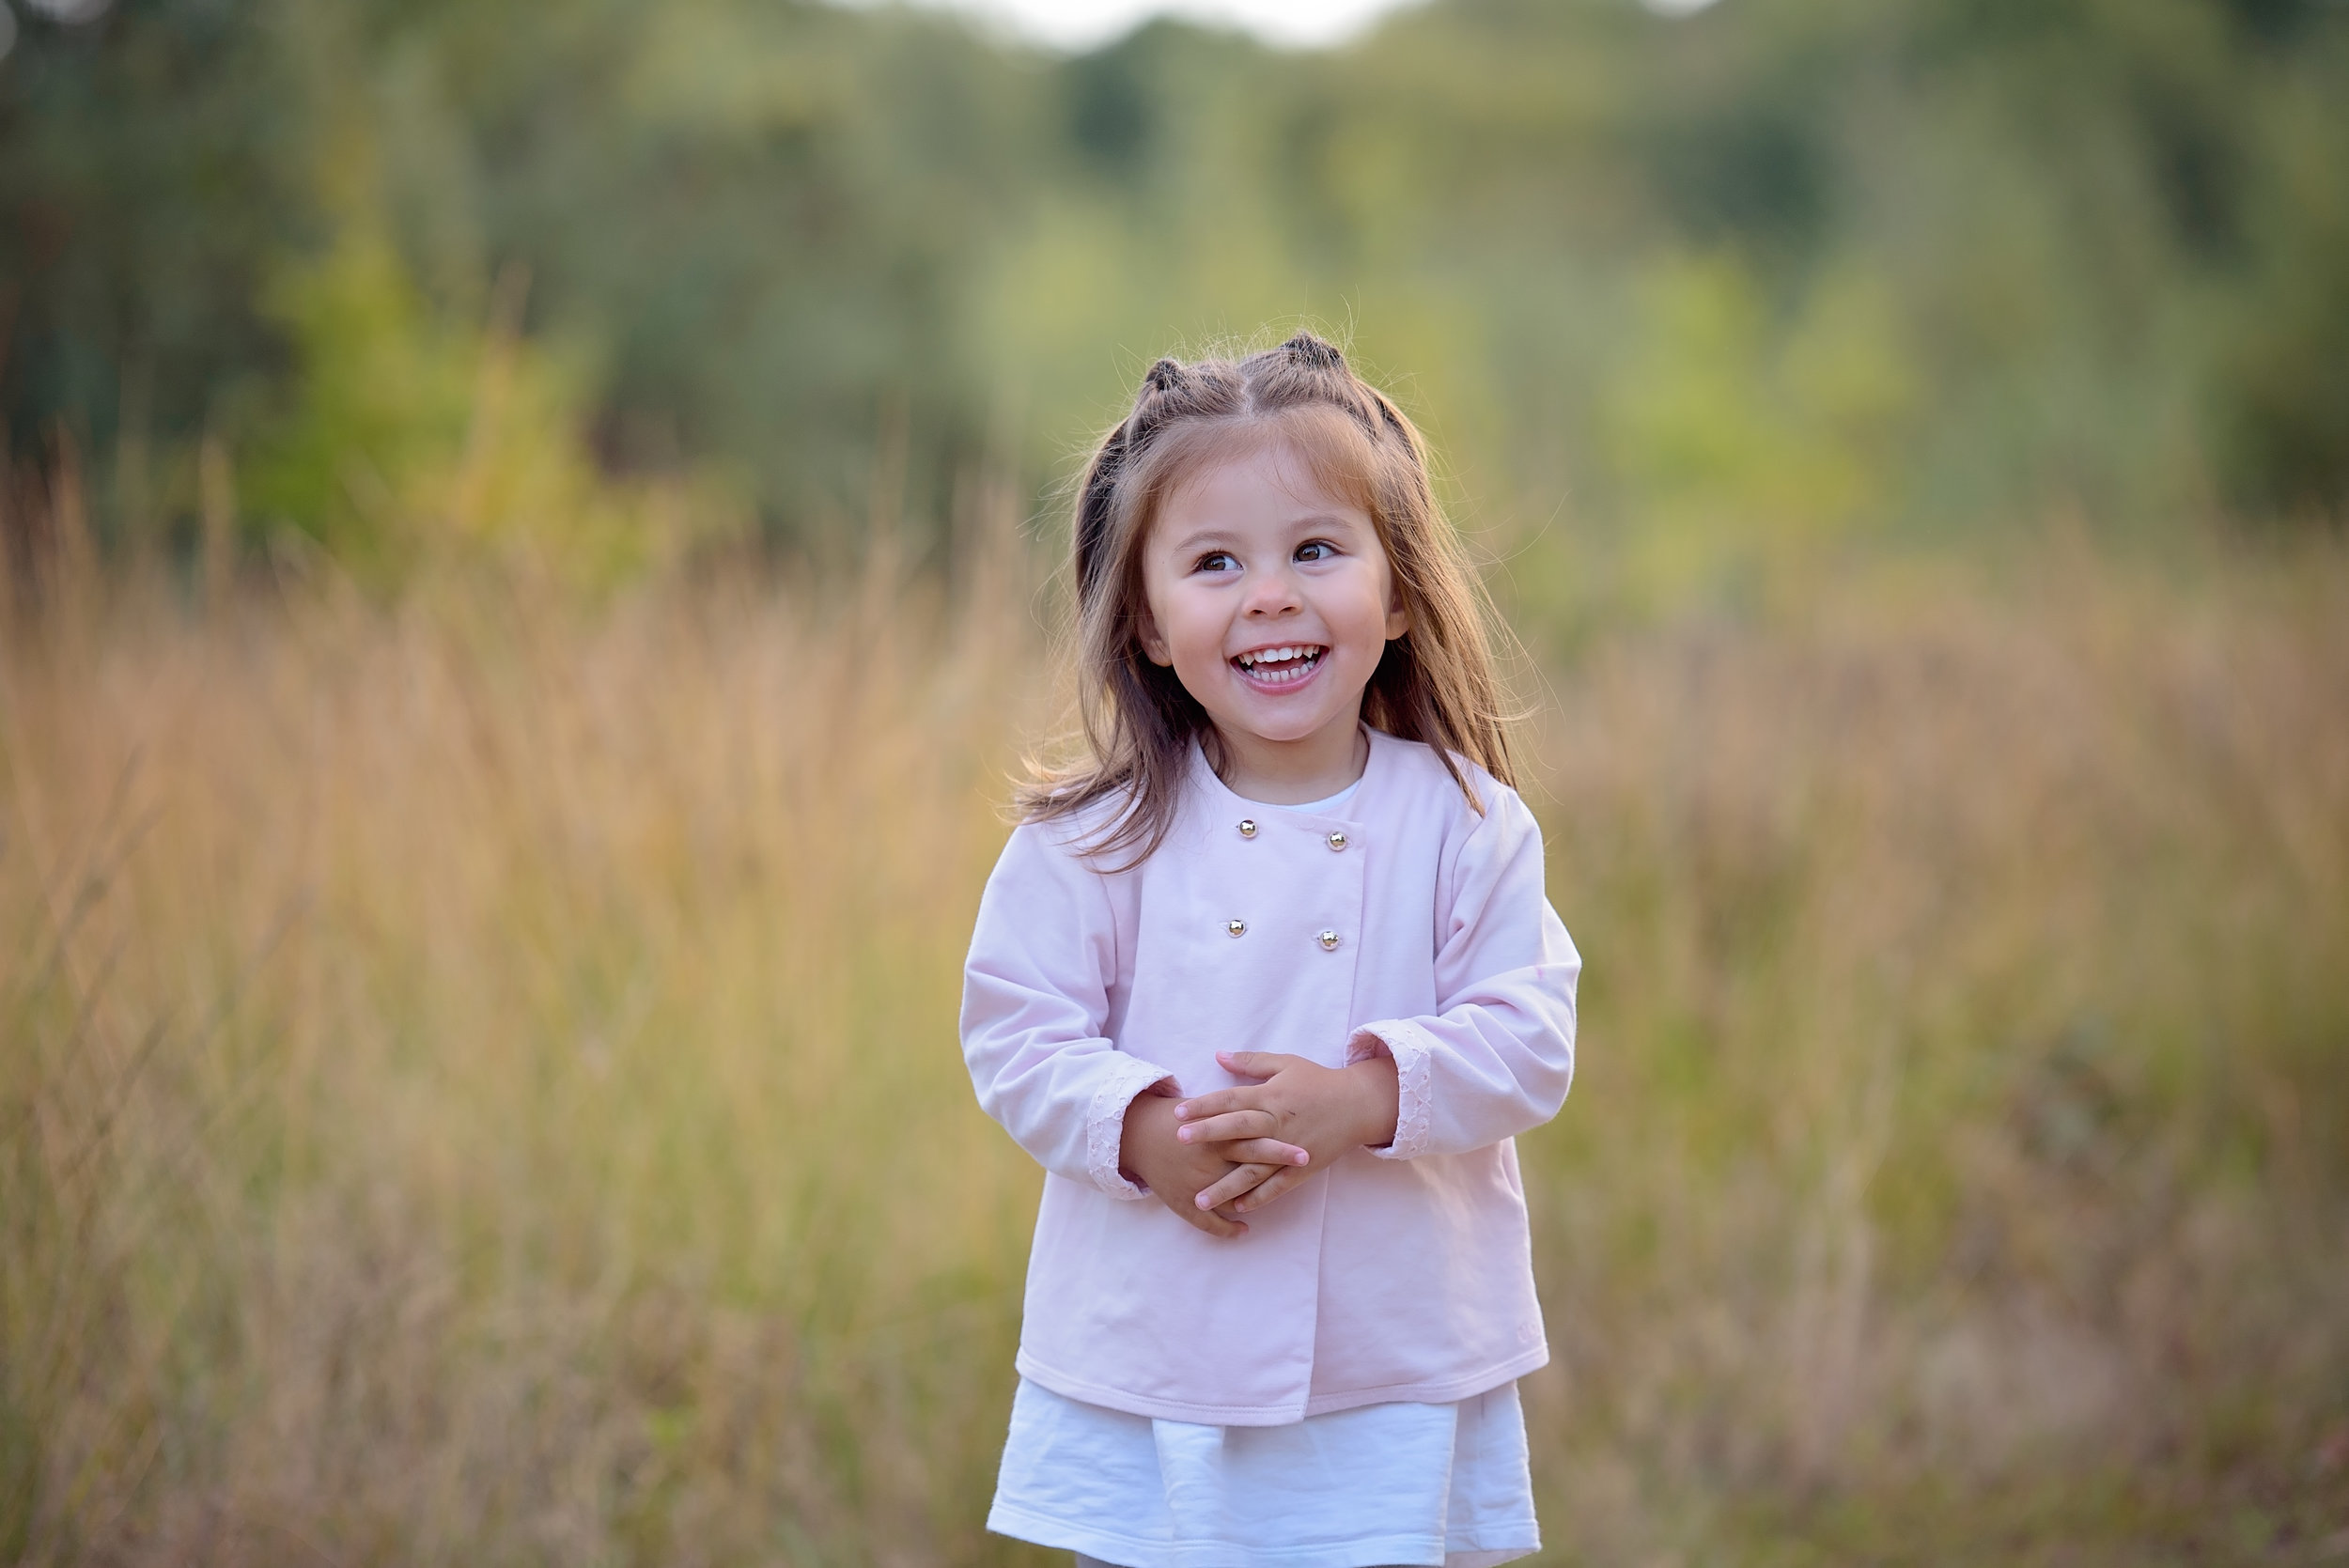 Children's portrait photography in Wimbledon